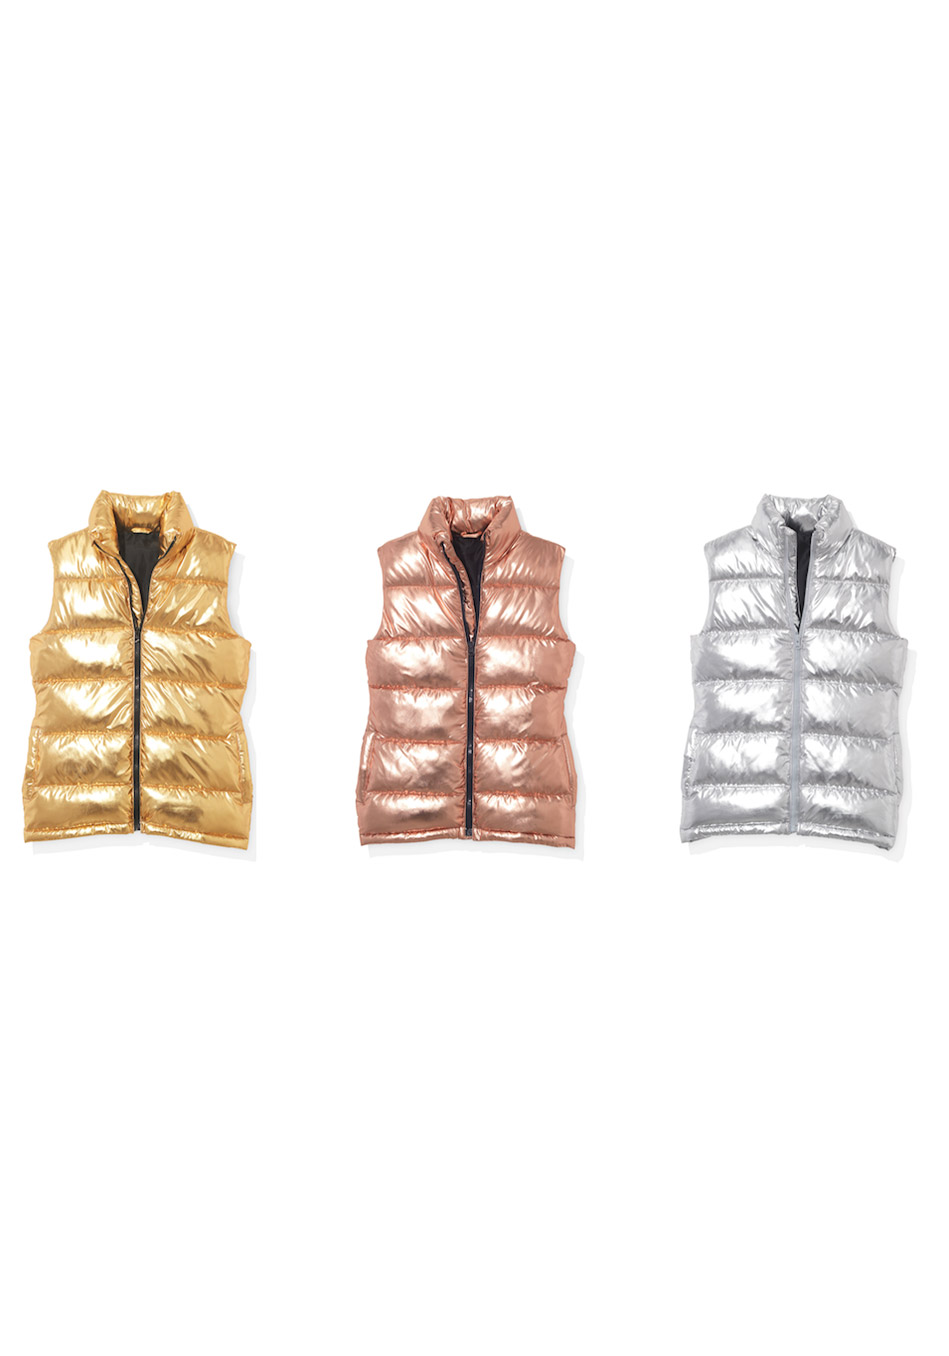 Metallic Puffer Vests